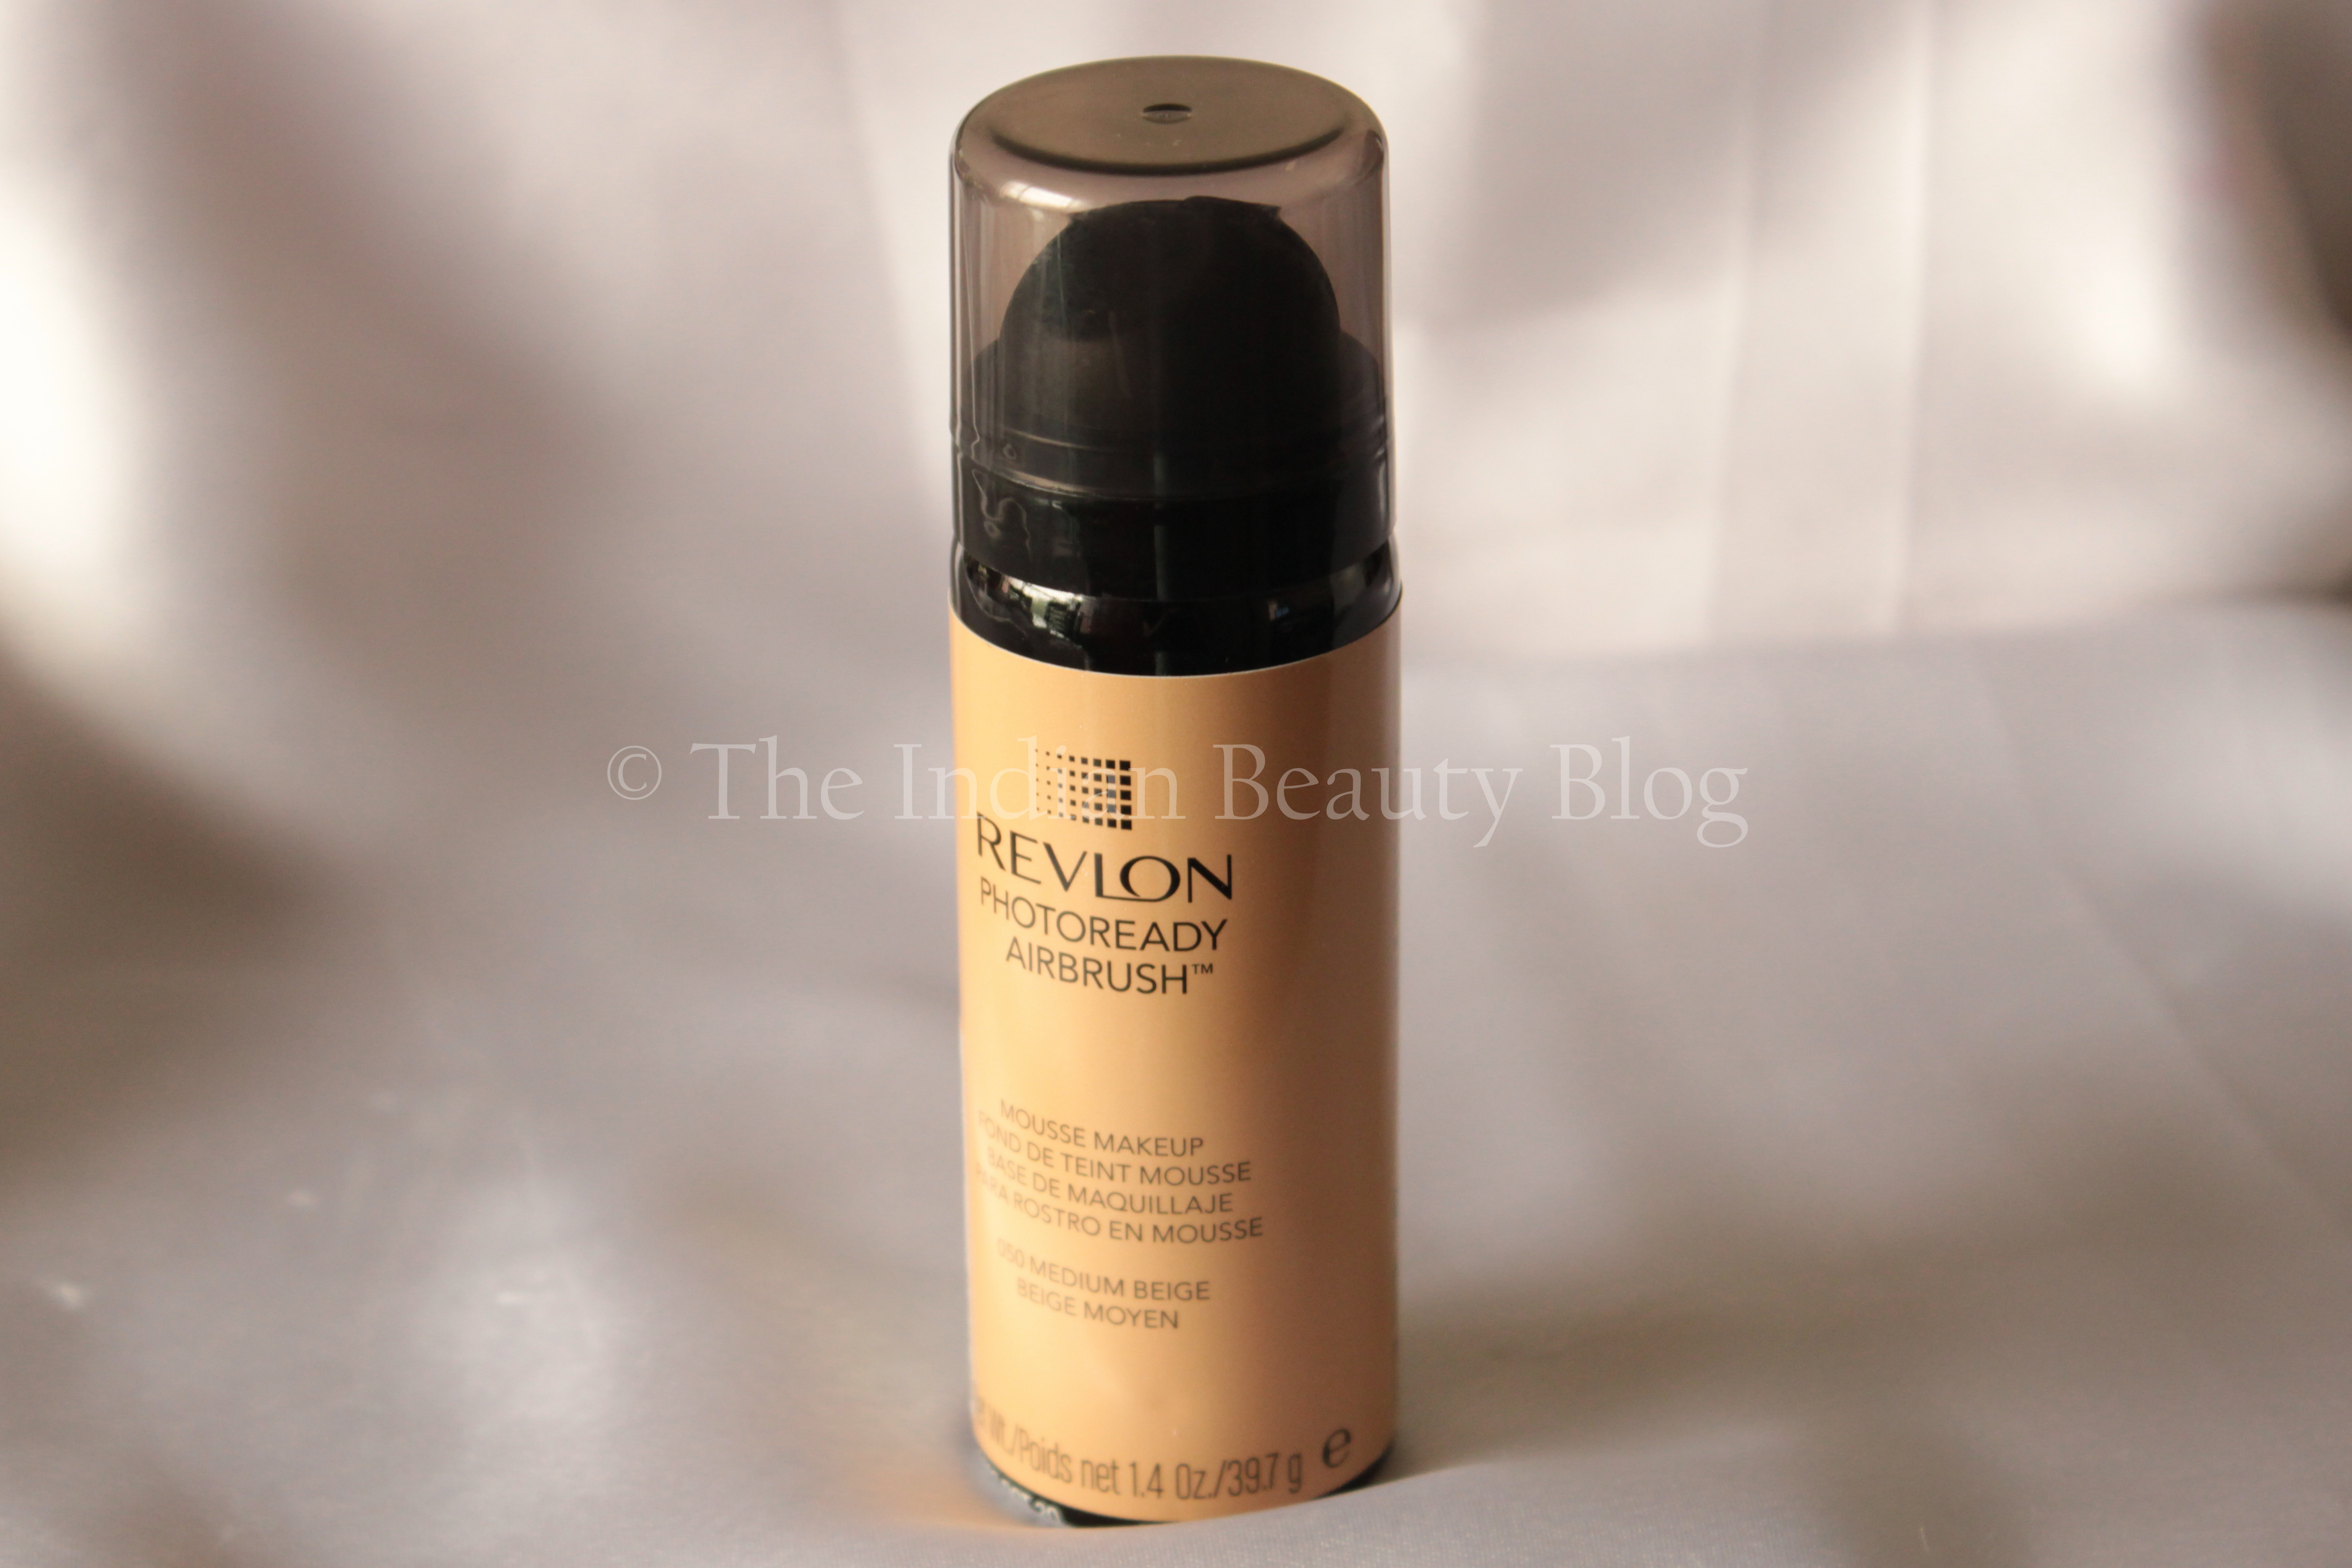 revlon phtoready airbrush foundation. About Revlon Photoready Airbrush Mousse Makeup: ...